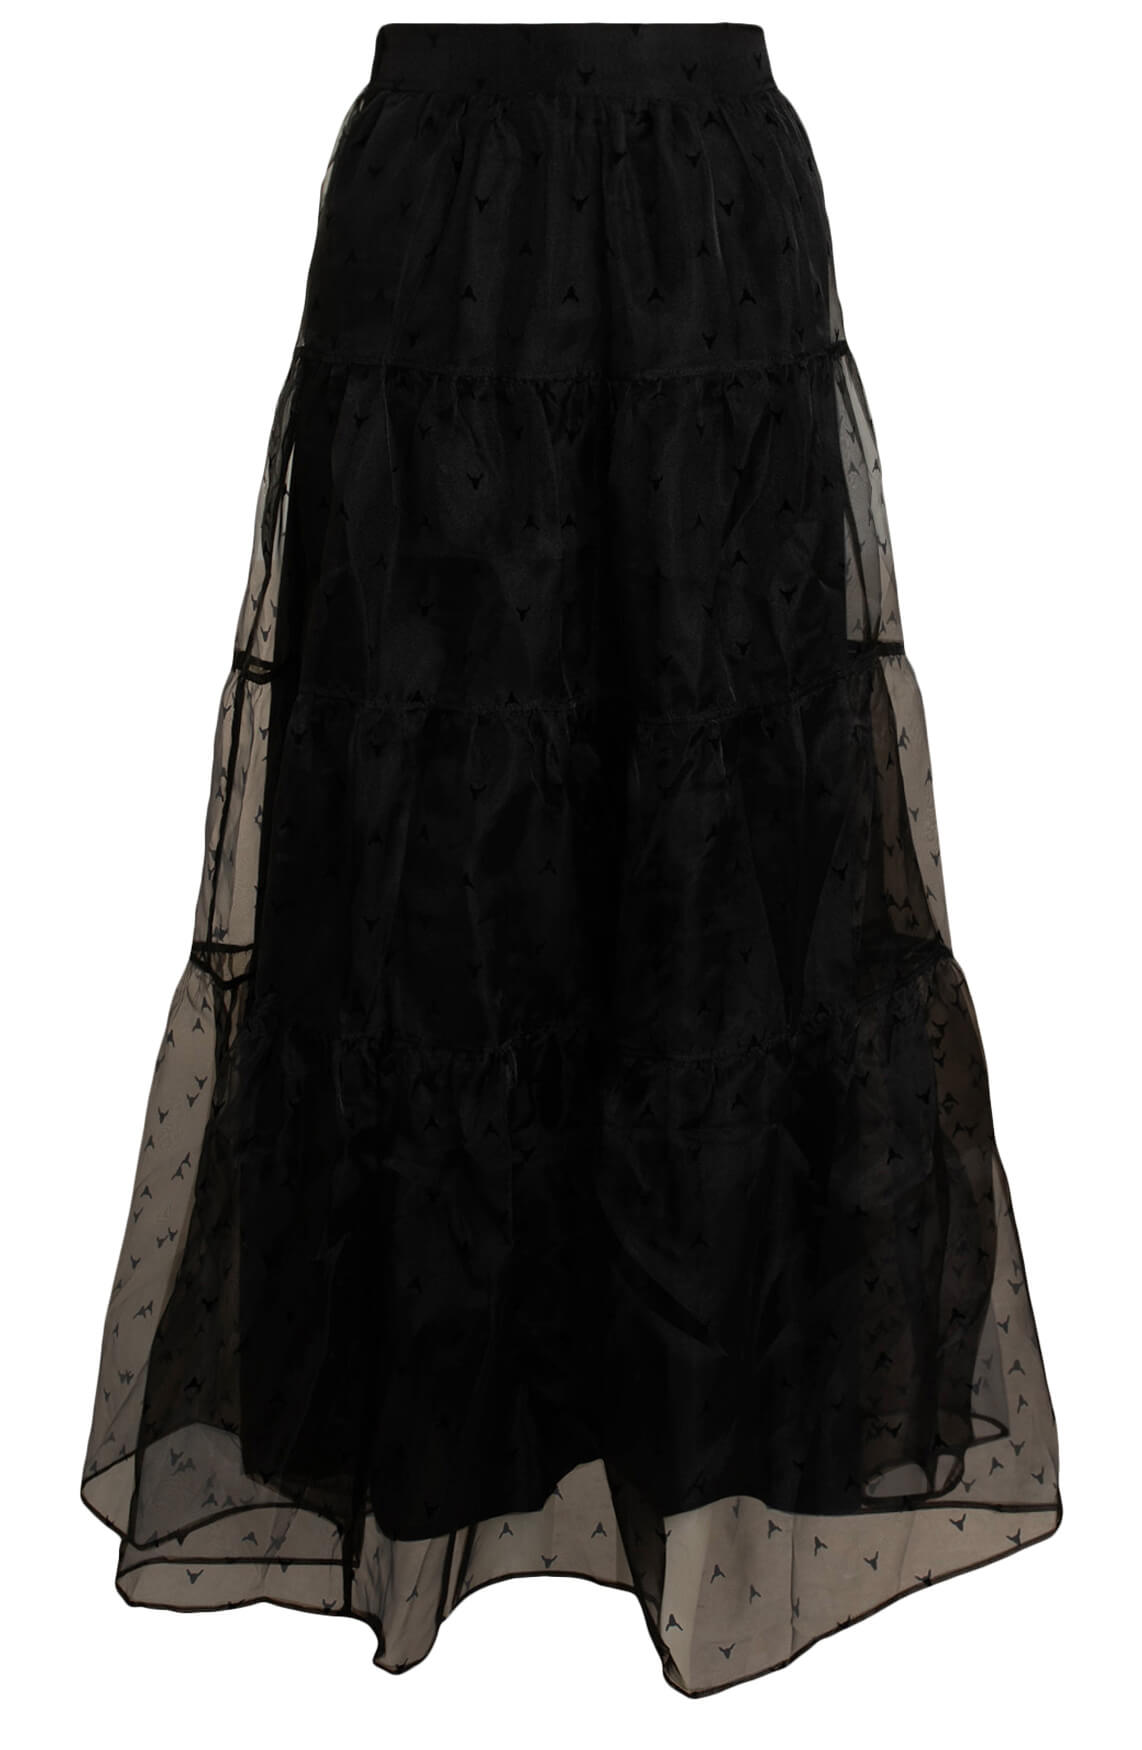 Alix The Label Dames Organza rok zwart